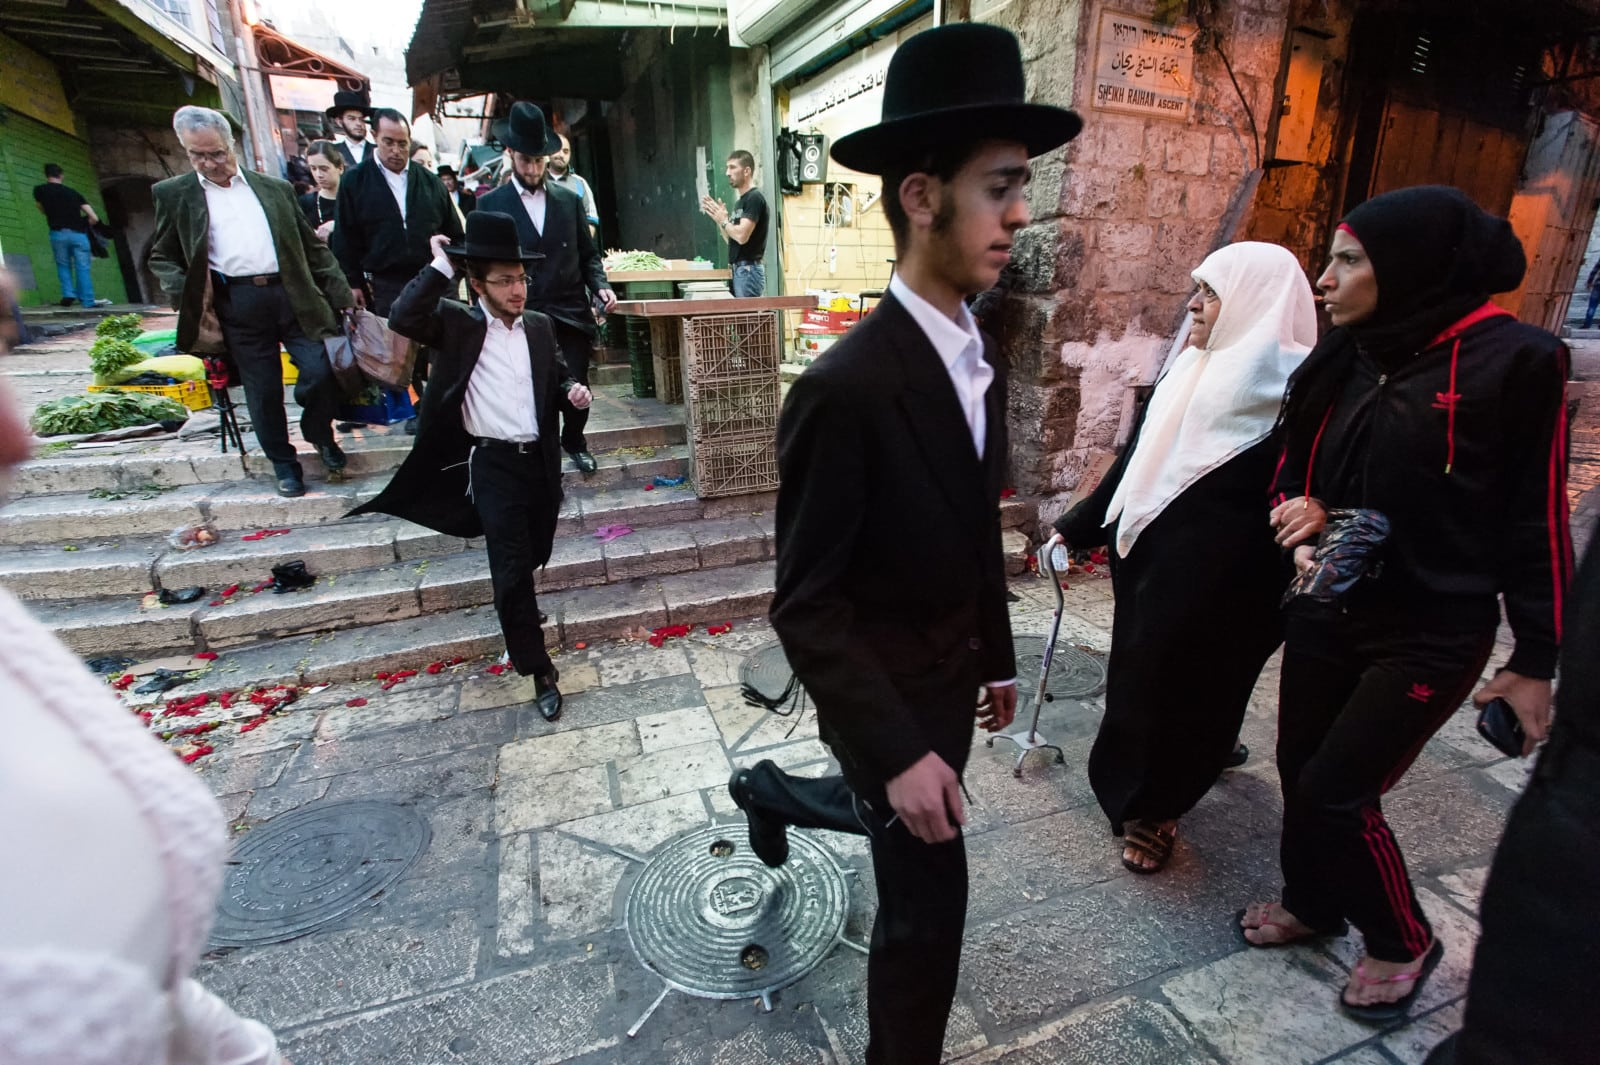 jews-jerusalem-old-town-israel-london-freelance-photographer-richard-isaac-3200